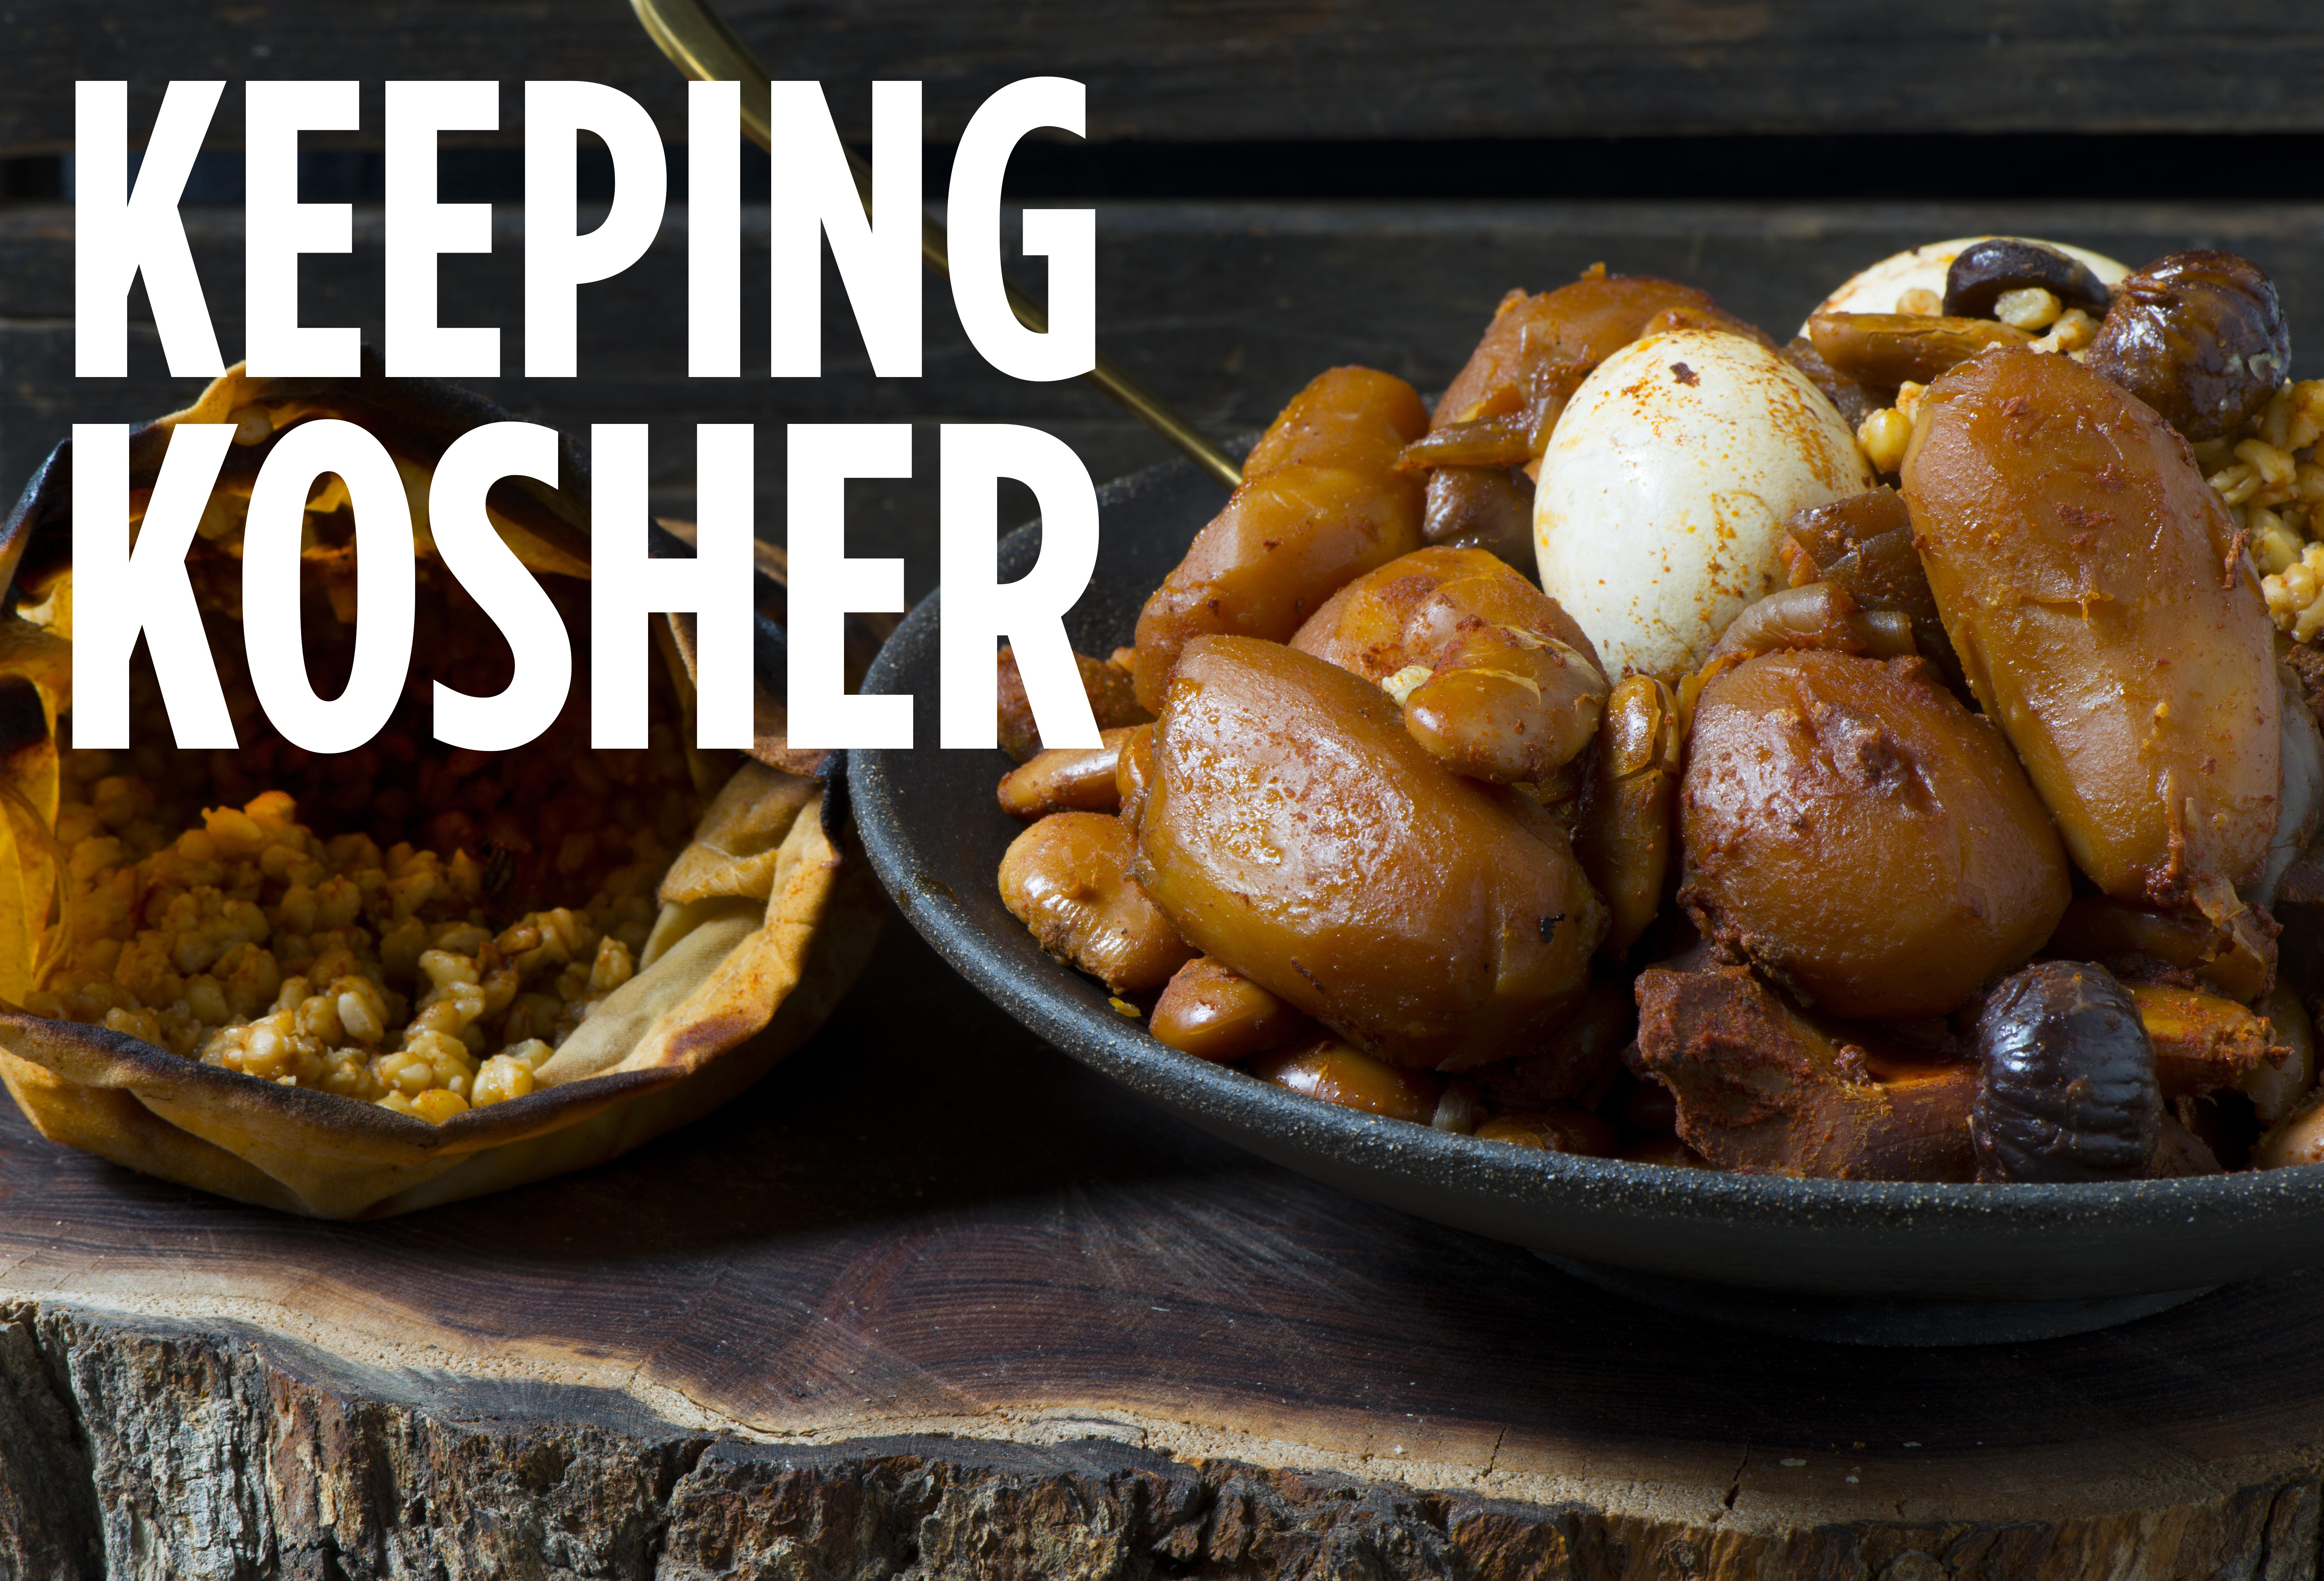 Keeping Kosher In Jewish Tradition Kosher Is More Than Avoiding